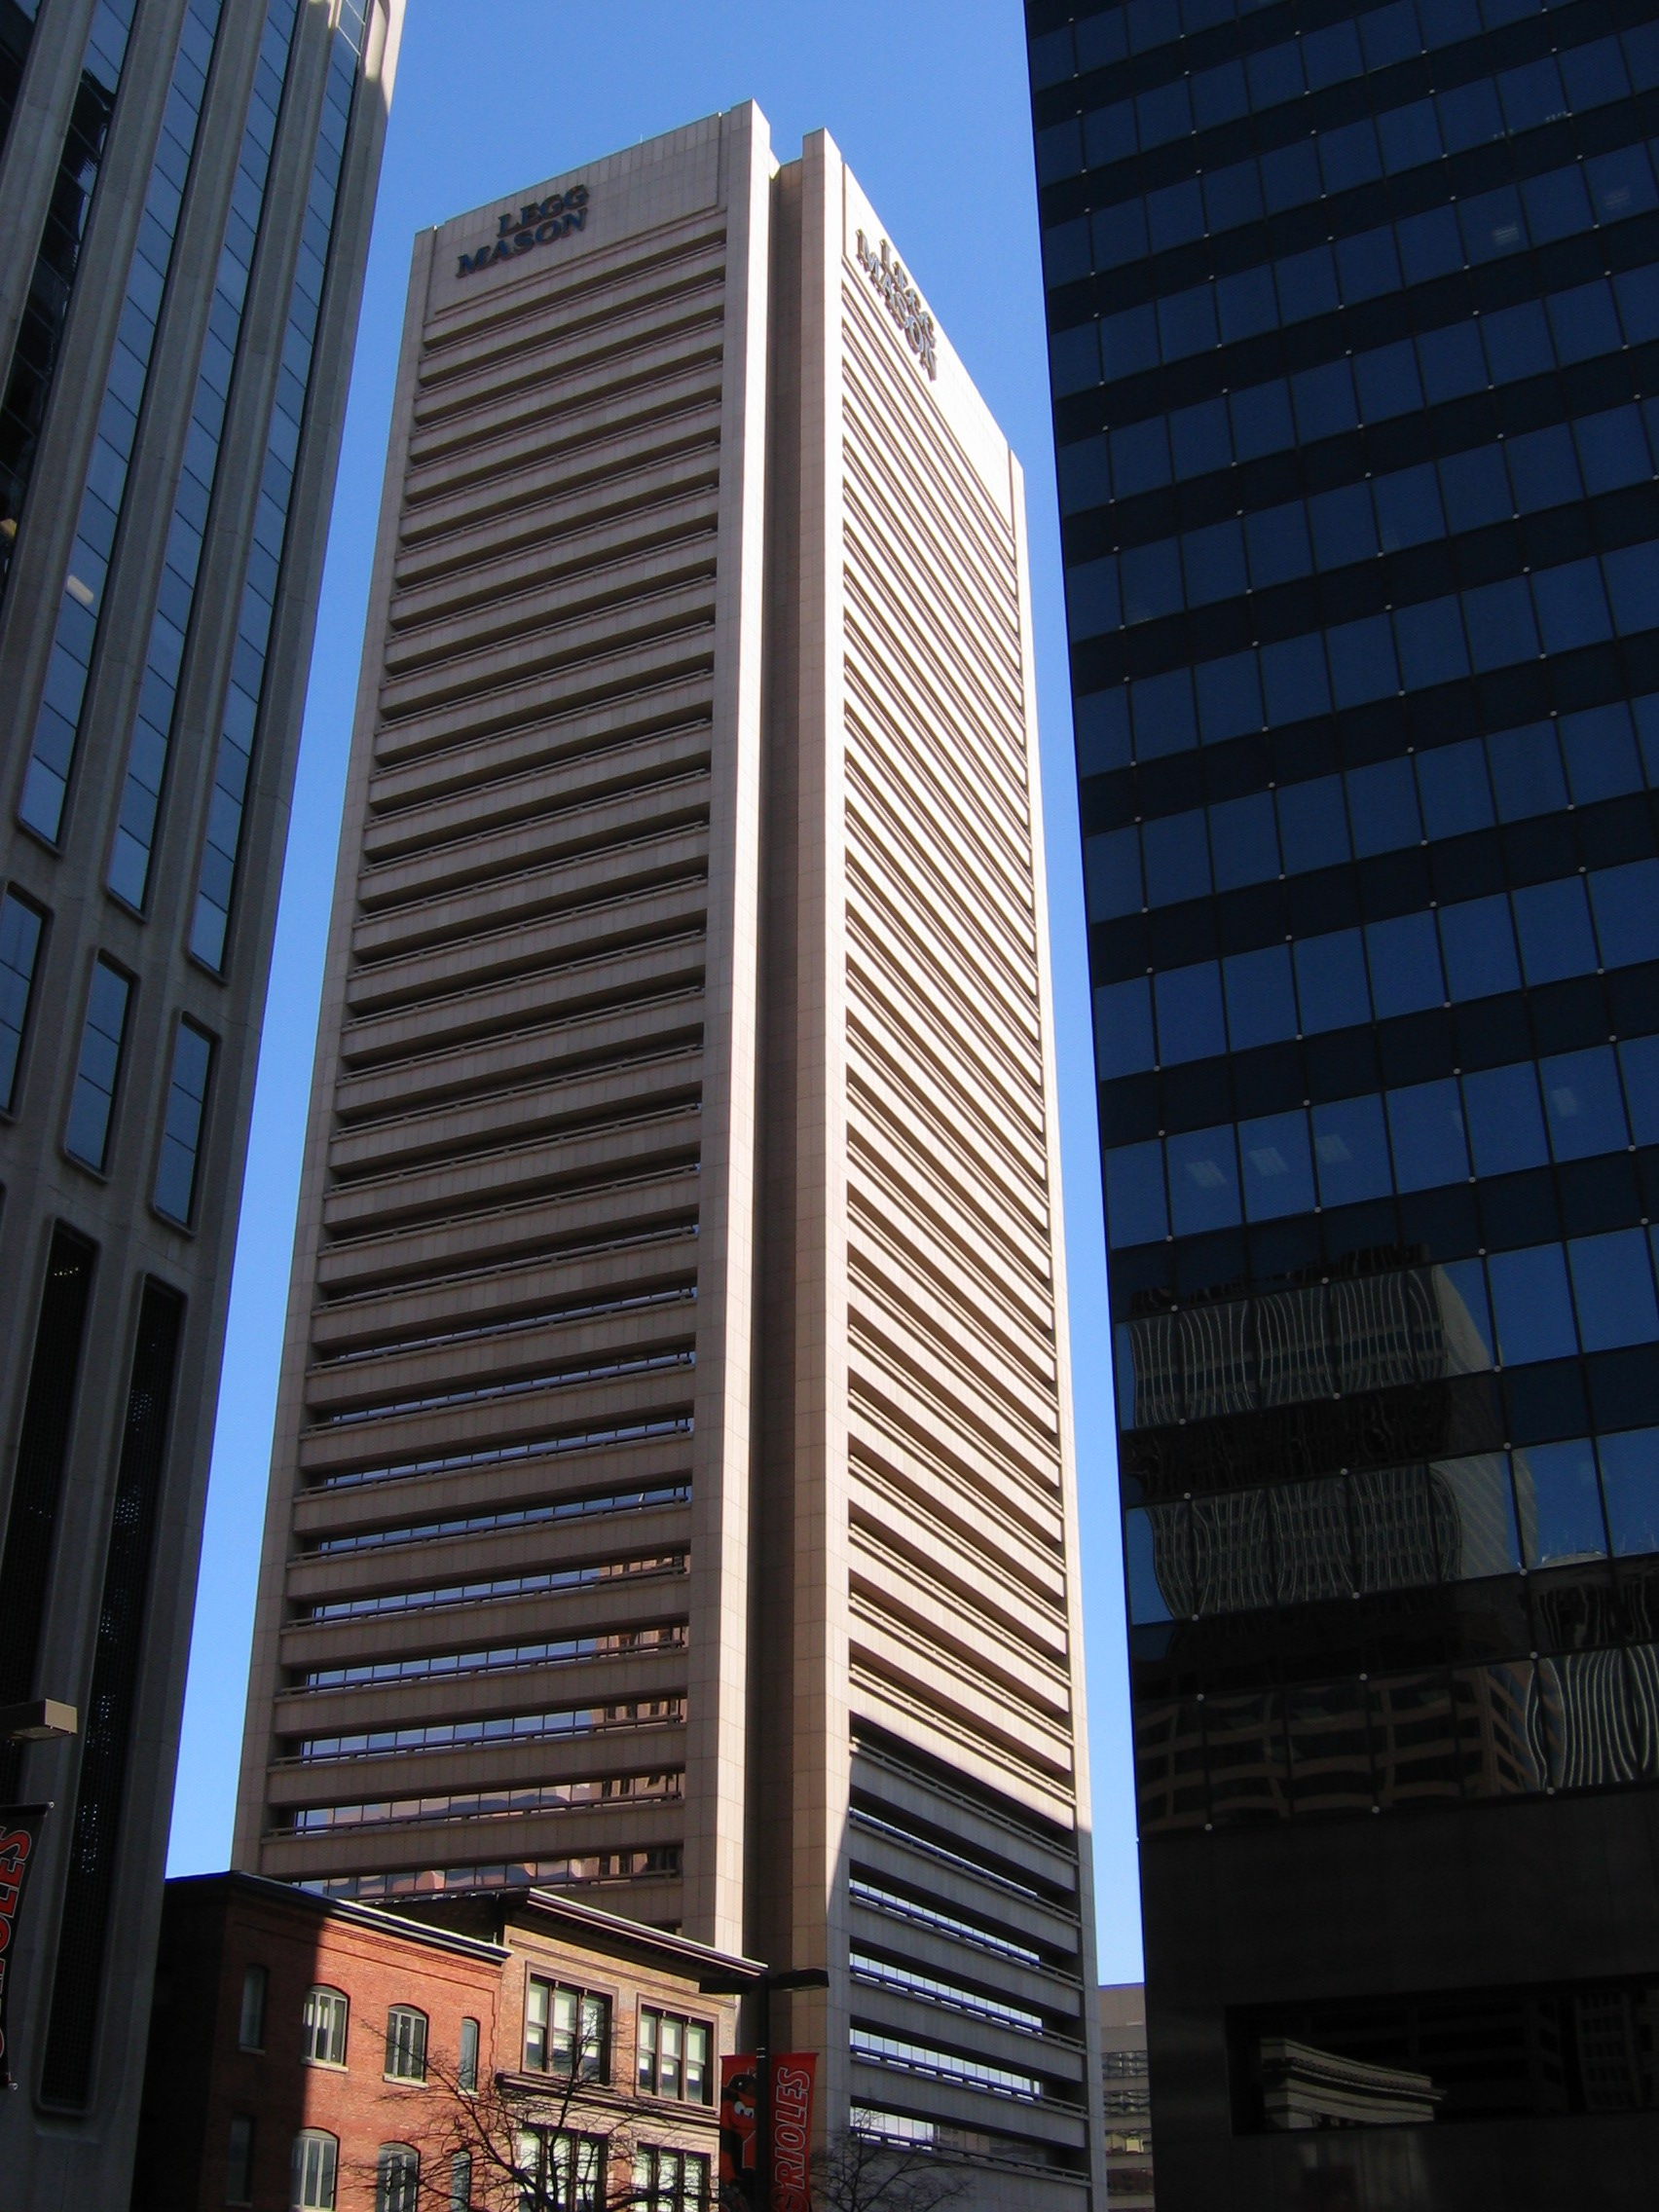 Engineer's Guide To Baltimore: Legg Mason Building